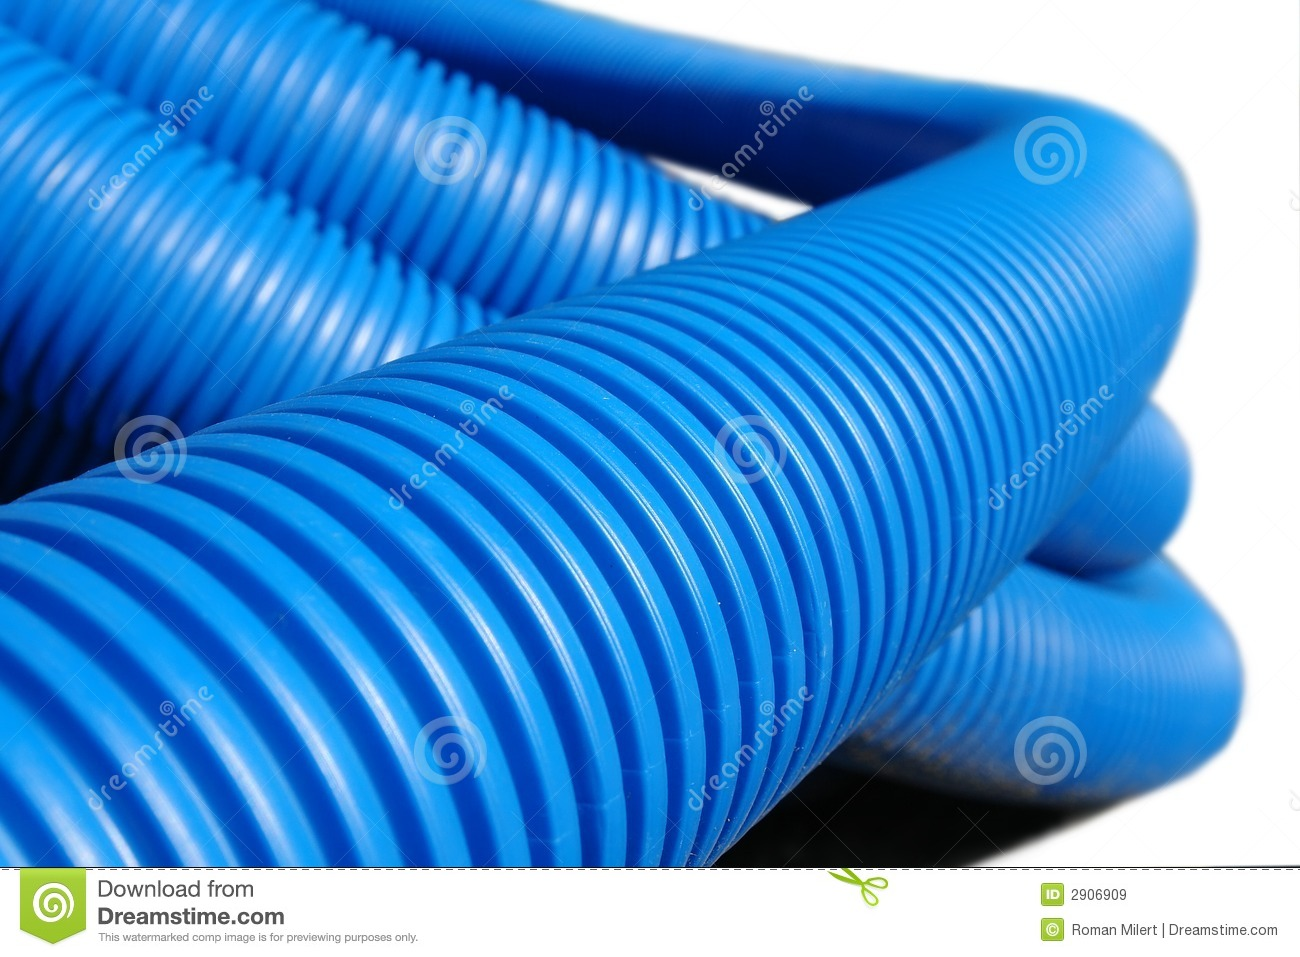 Corrugated plastic pipe royalty free stock images image for Plastic plumbing pipes